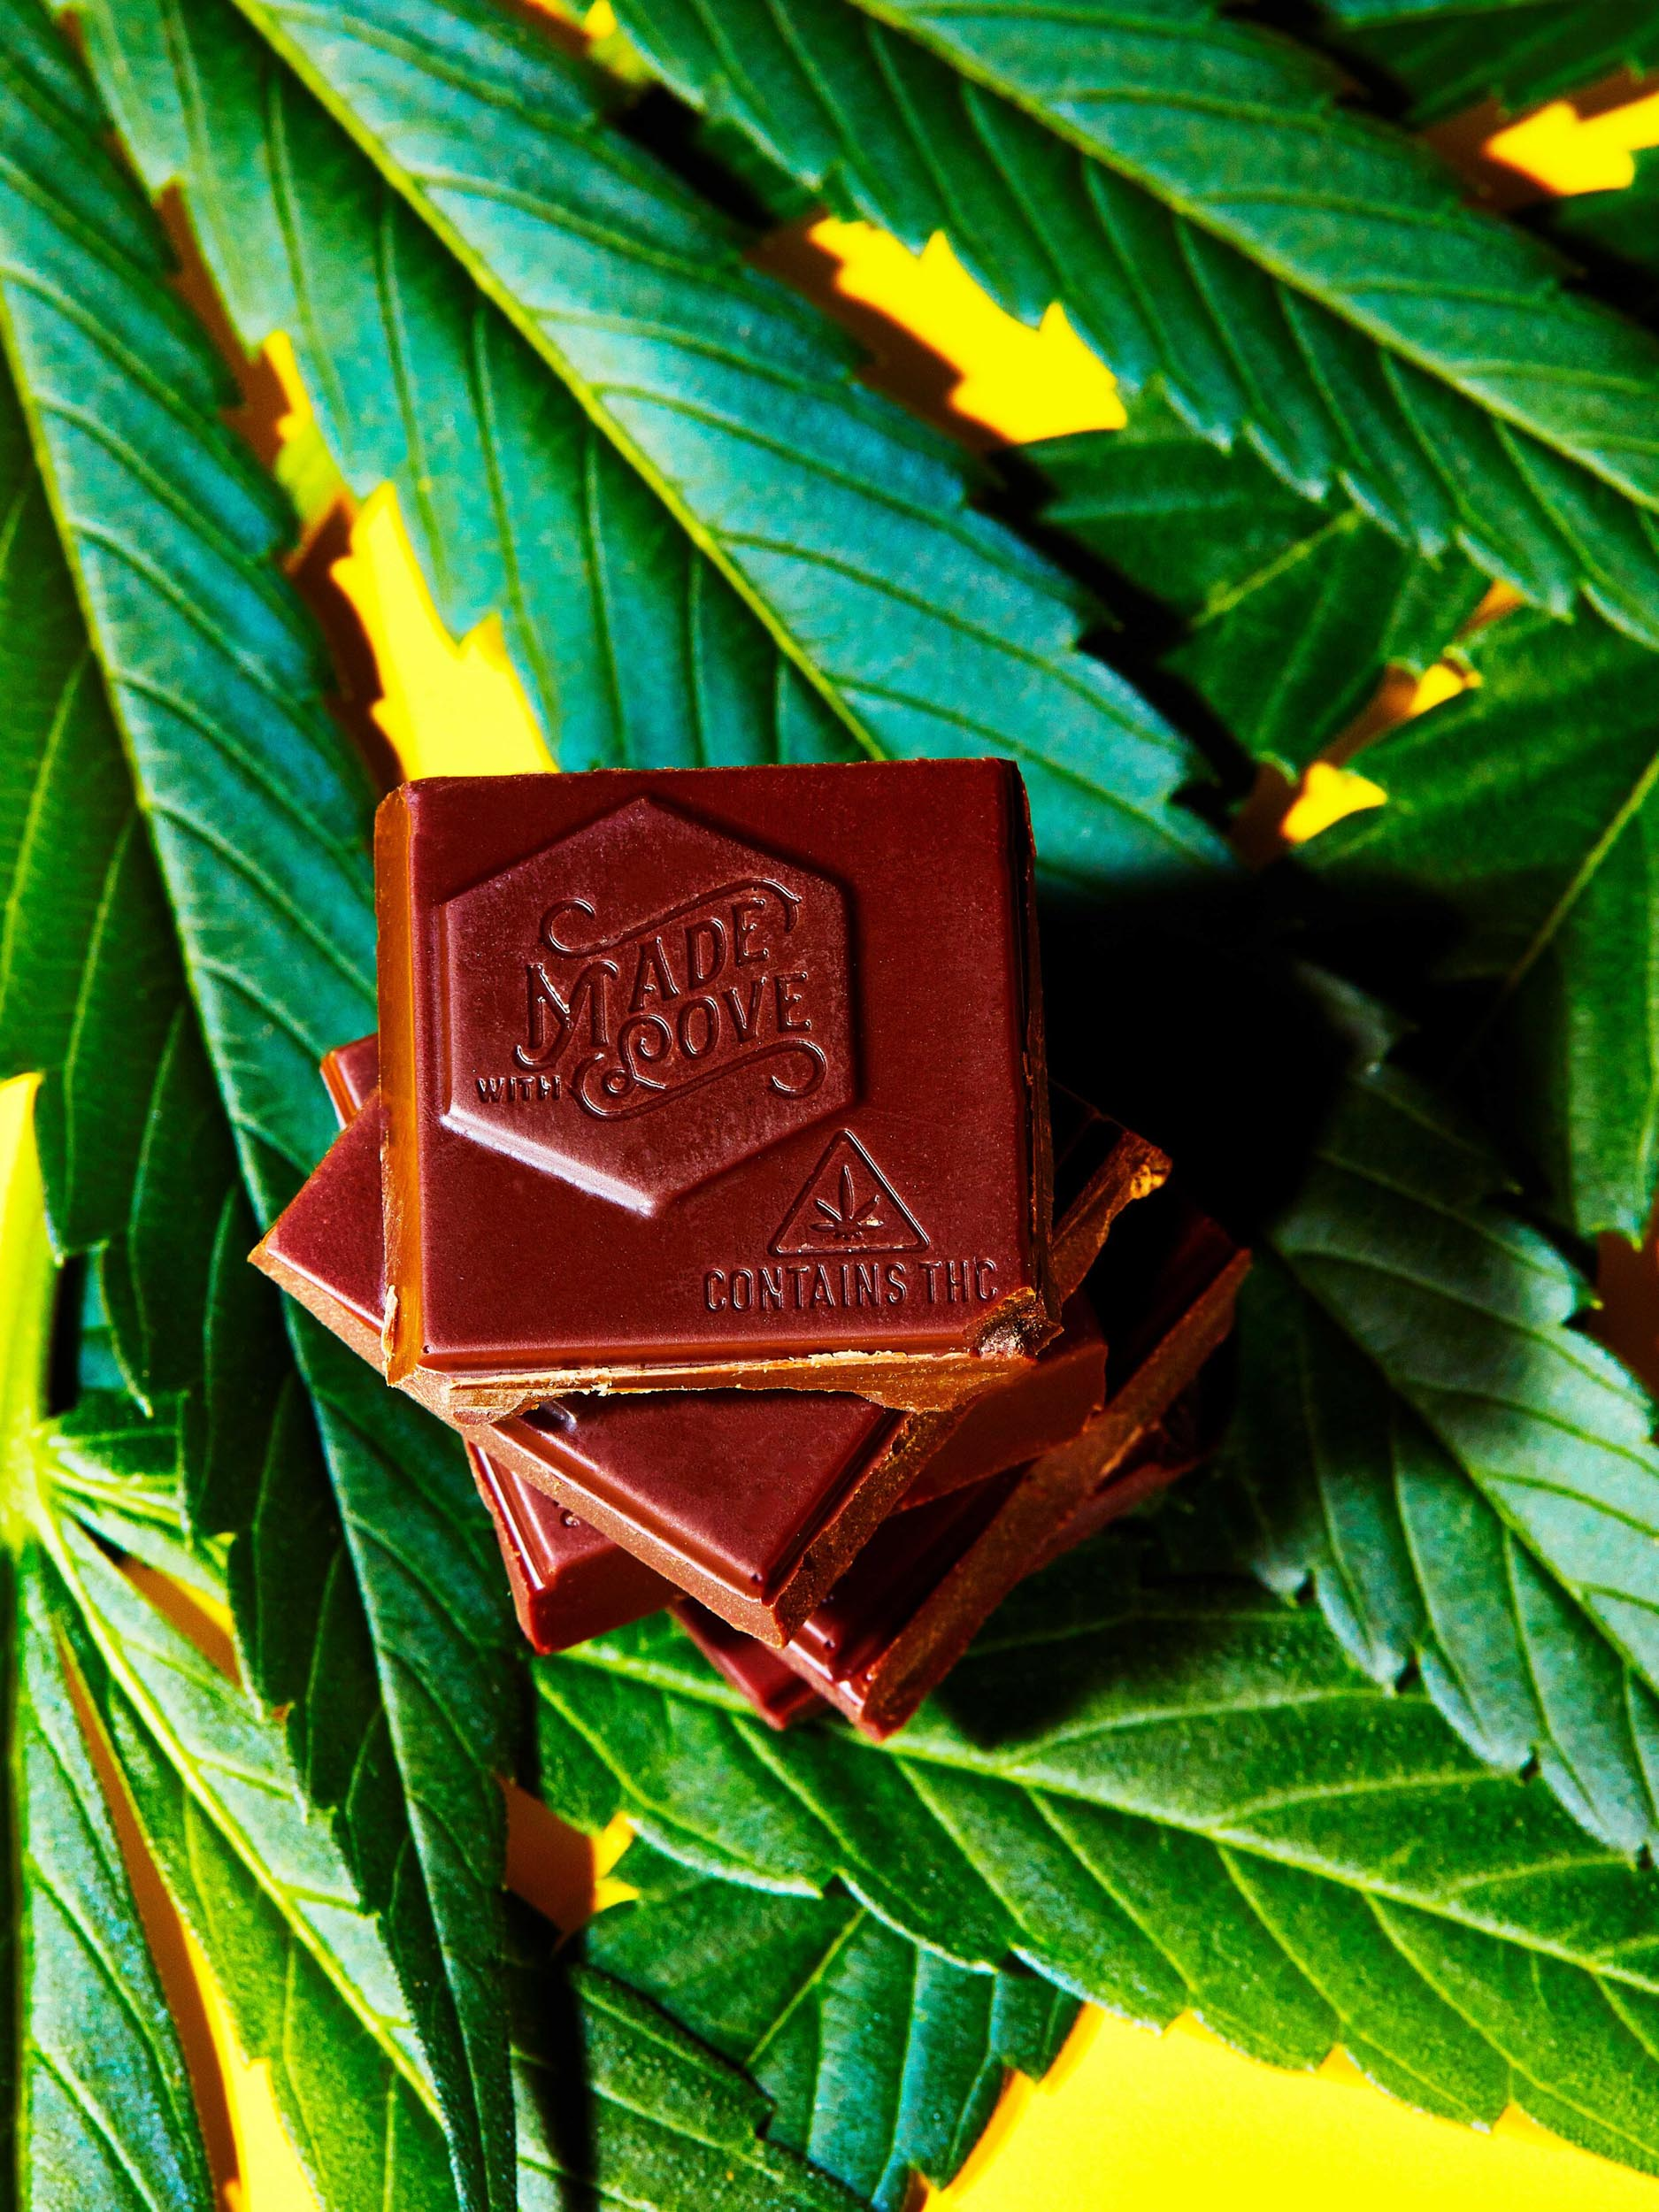 dominic-perri-cannabis-edibles-sira-naturals-made-with-love